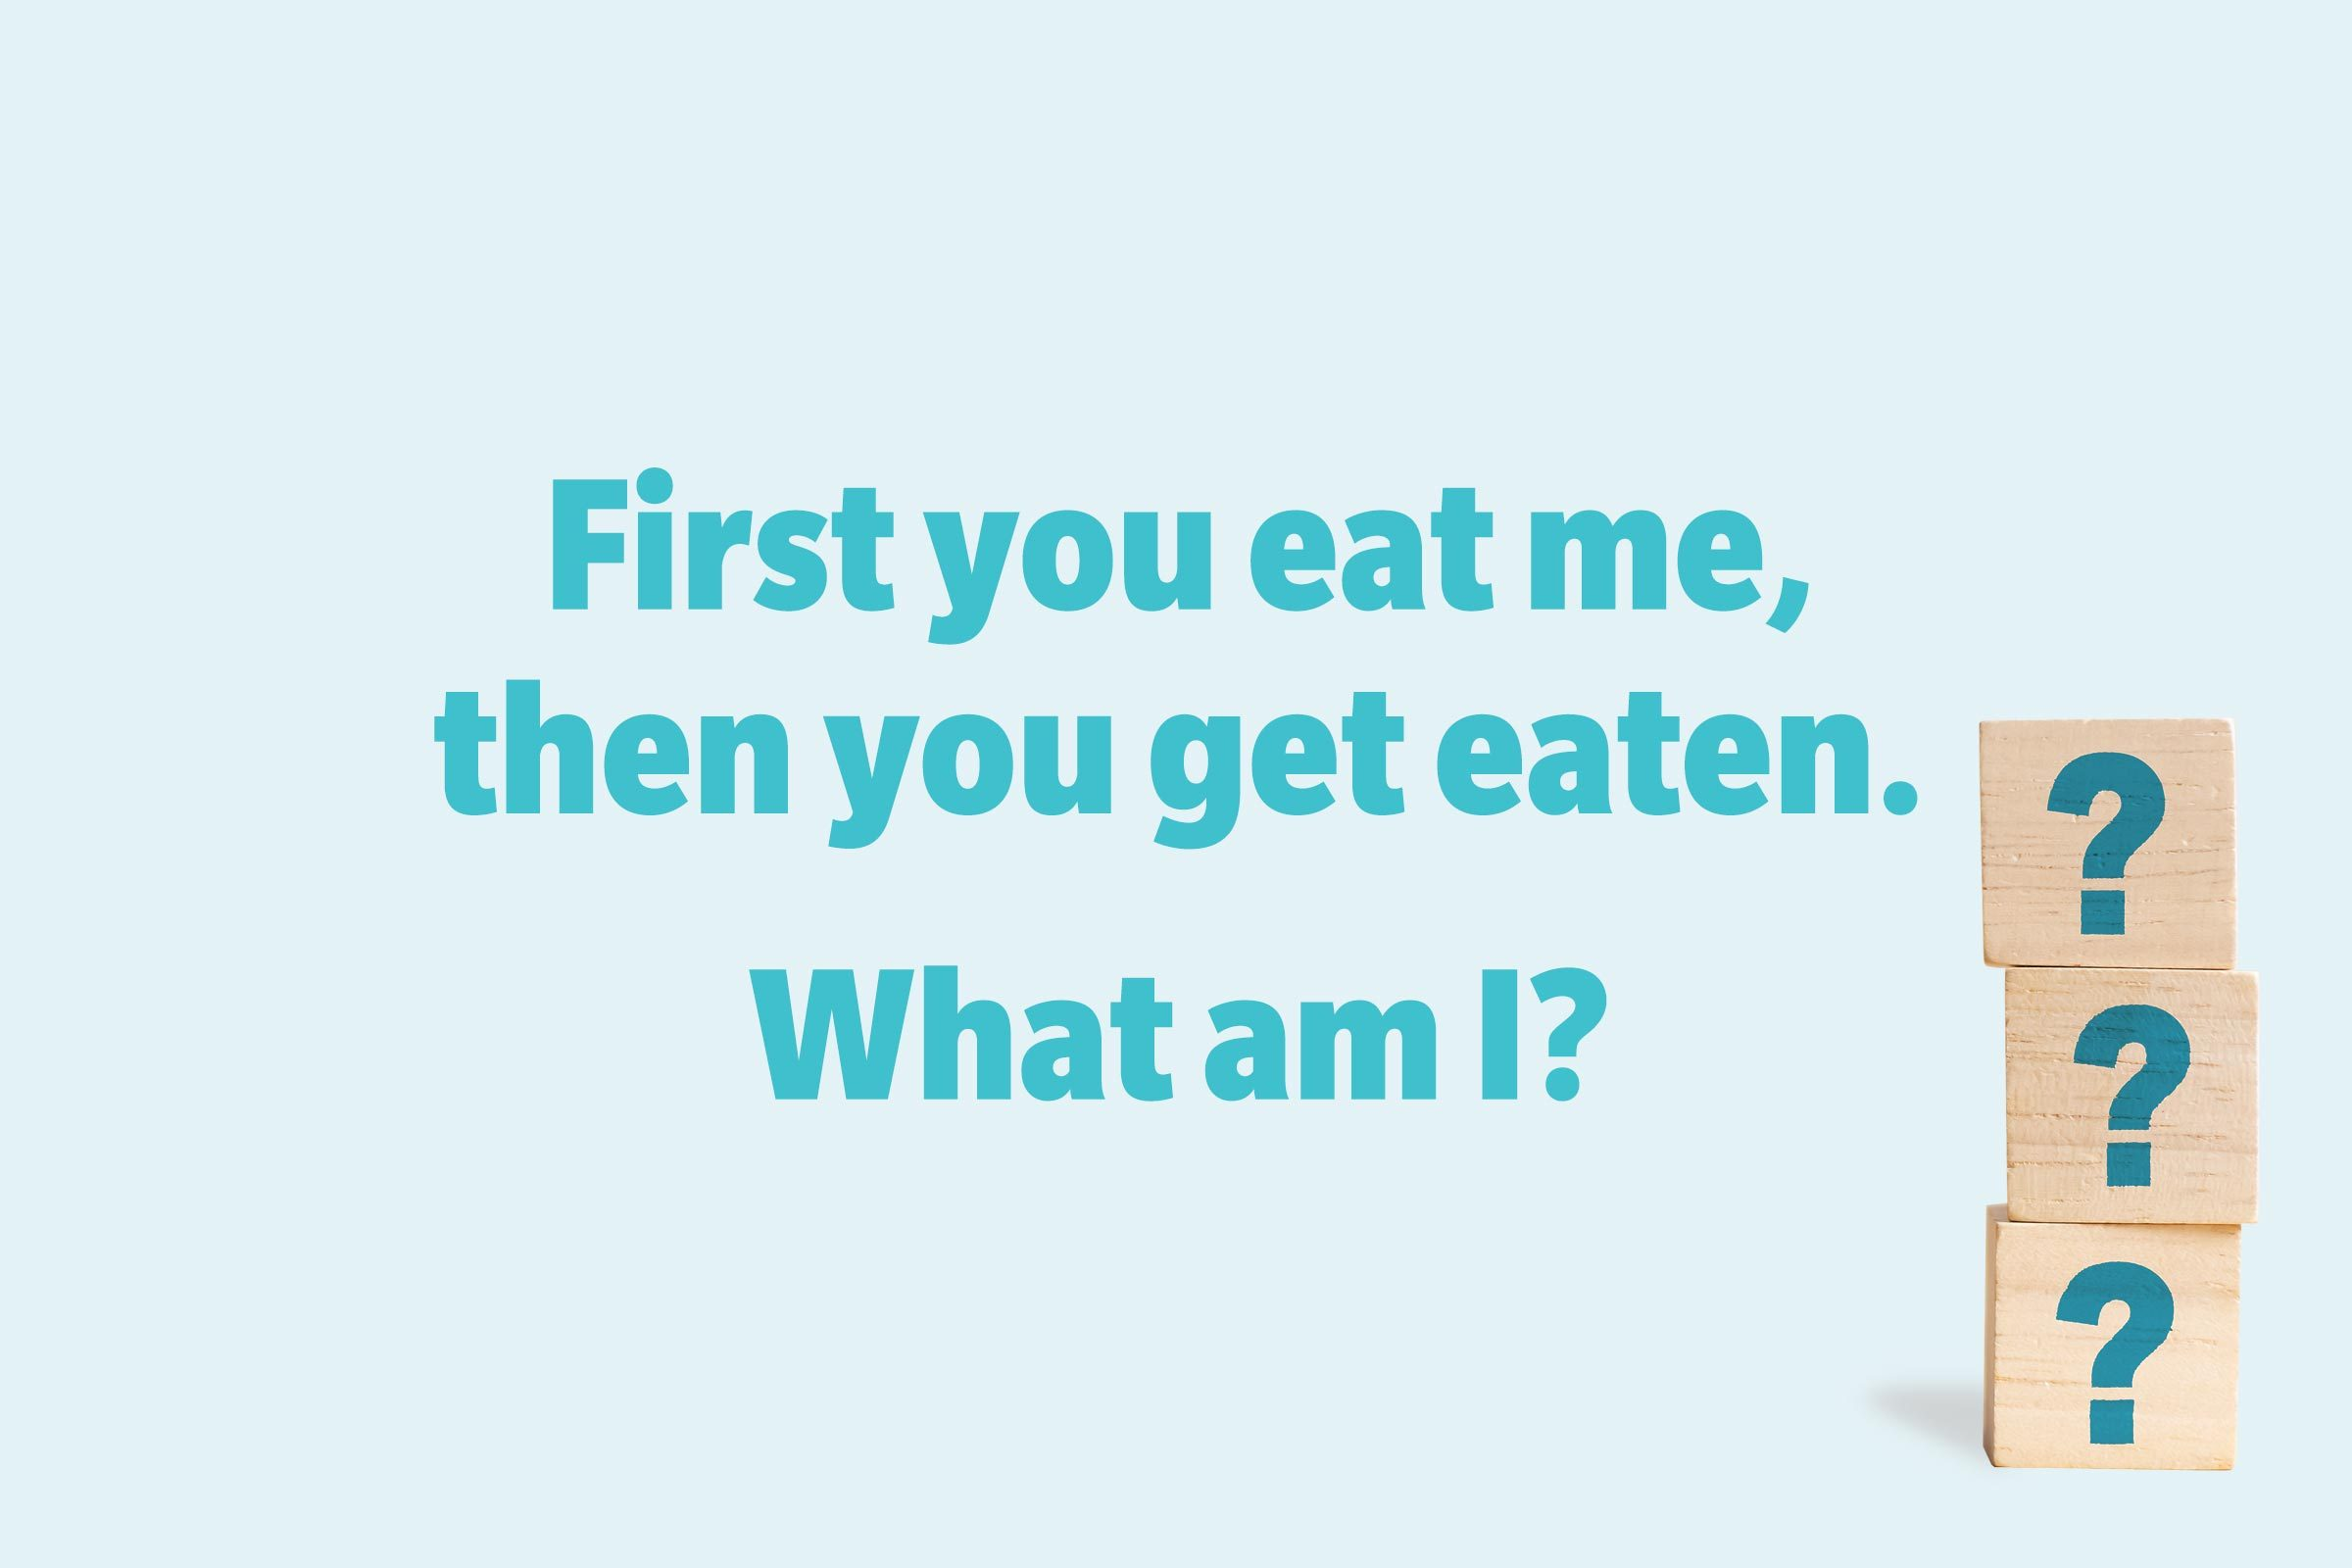 First you eat me, then you get eaten. What am I?